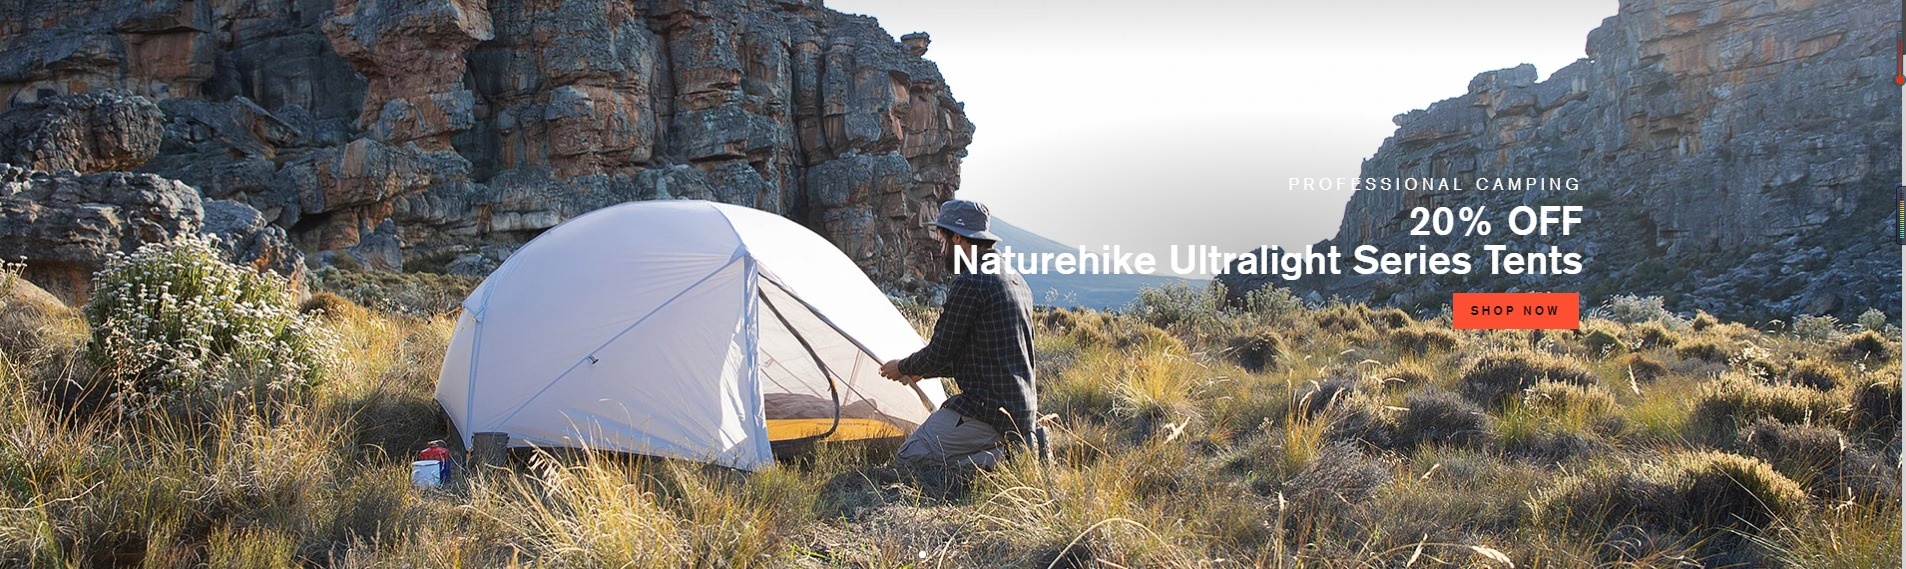 Naturehike camping tent series sale